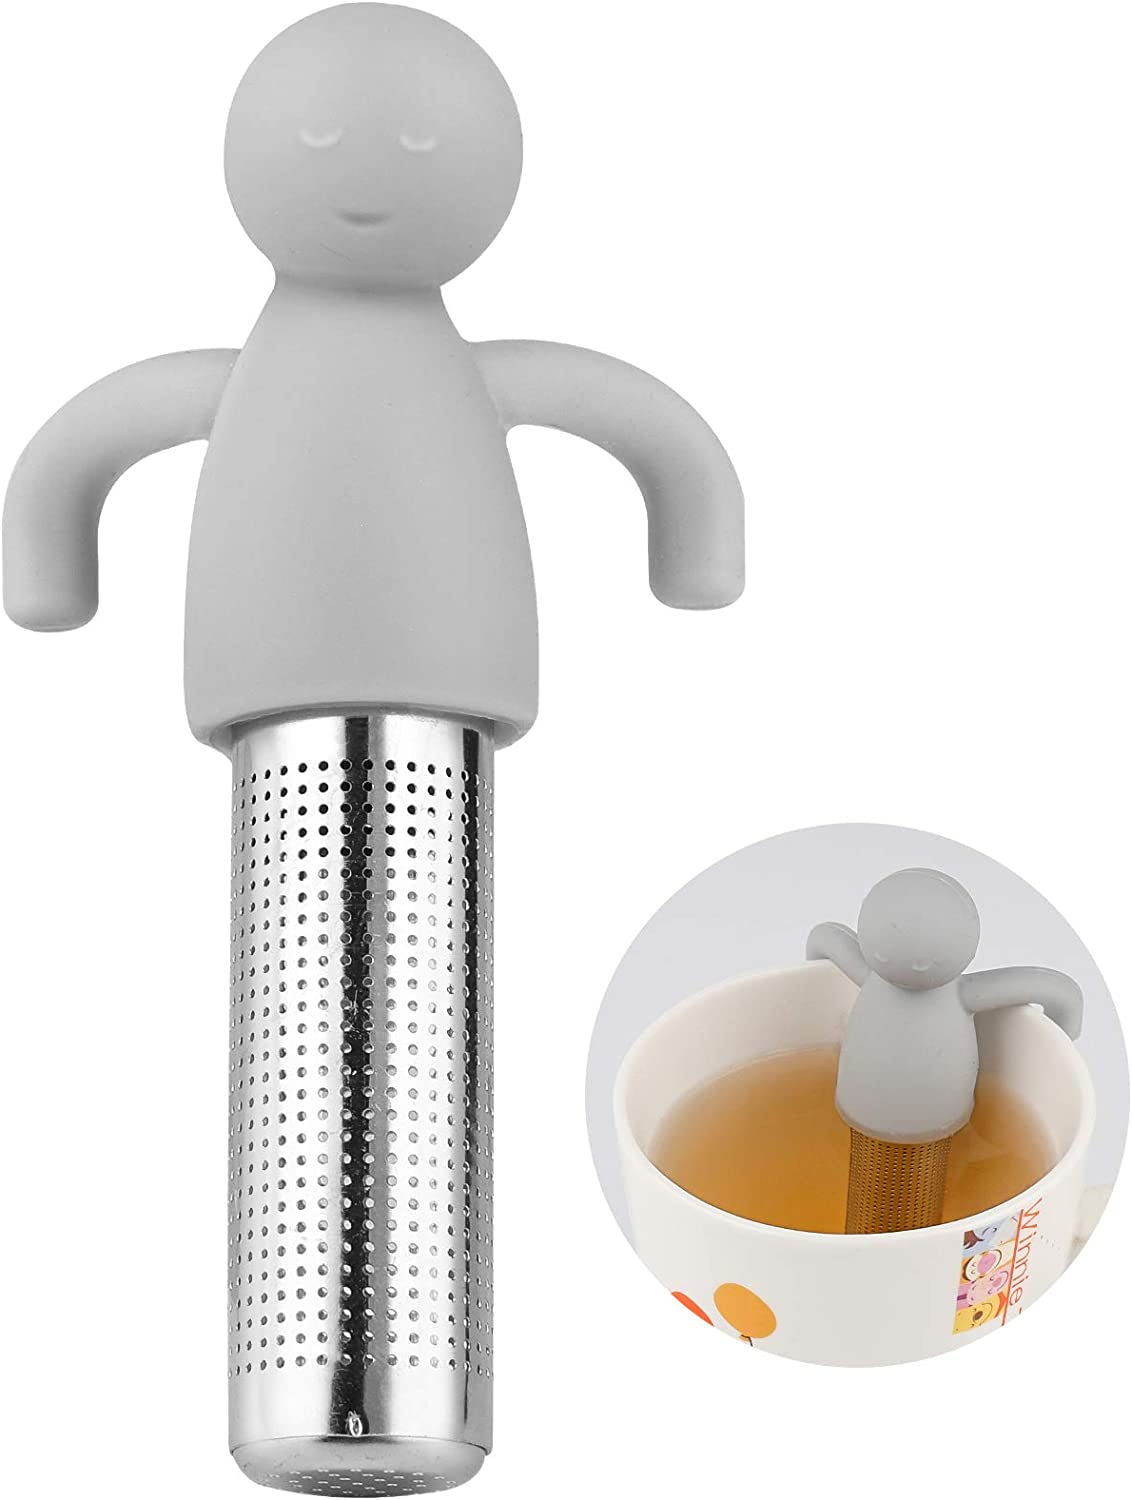 Tea Infuser, Tea Steeper Tea Infusers for Loose Tea, Tea Filter, Made of Food Contact-Grade Silicone and 304 Food-Grade Stainless Steel, Cute Doll Shape, Suitable for Most Teacups, Gray